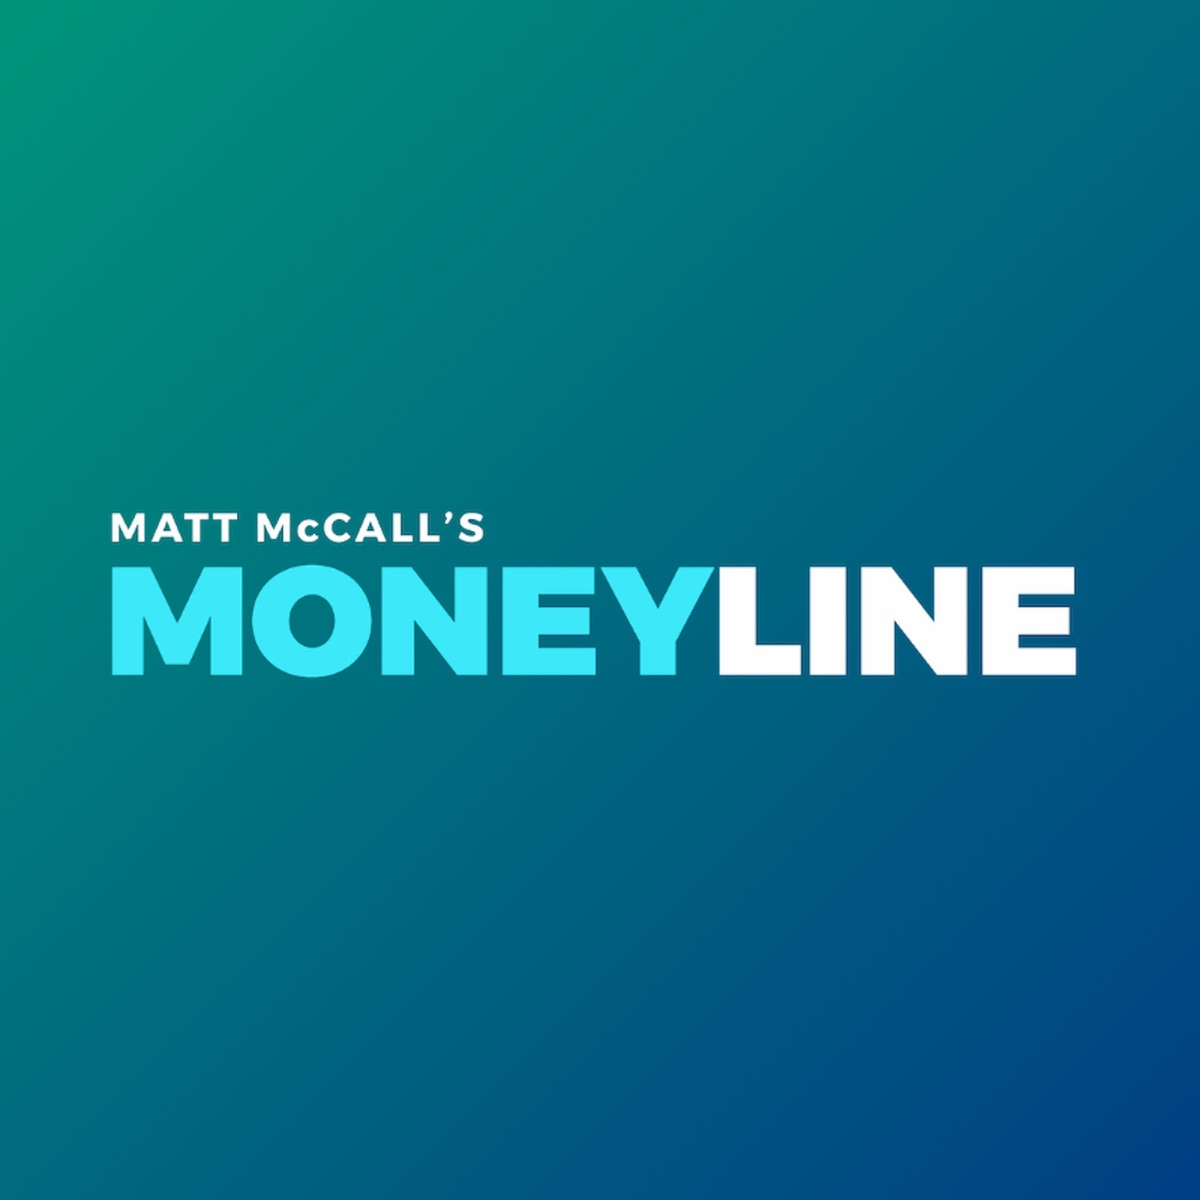 Matt McCall's Moneyline